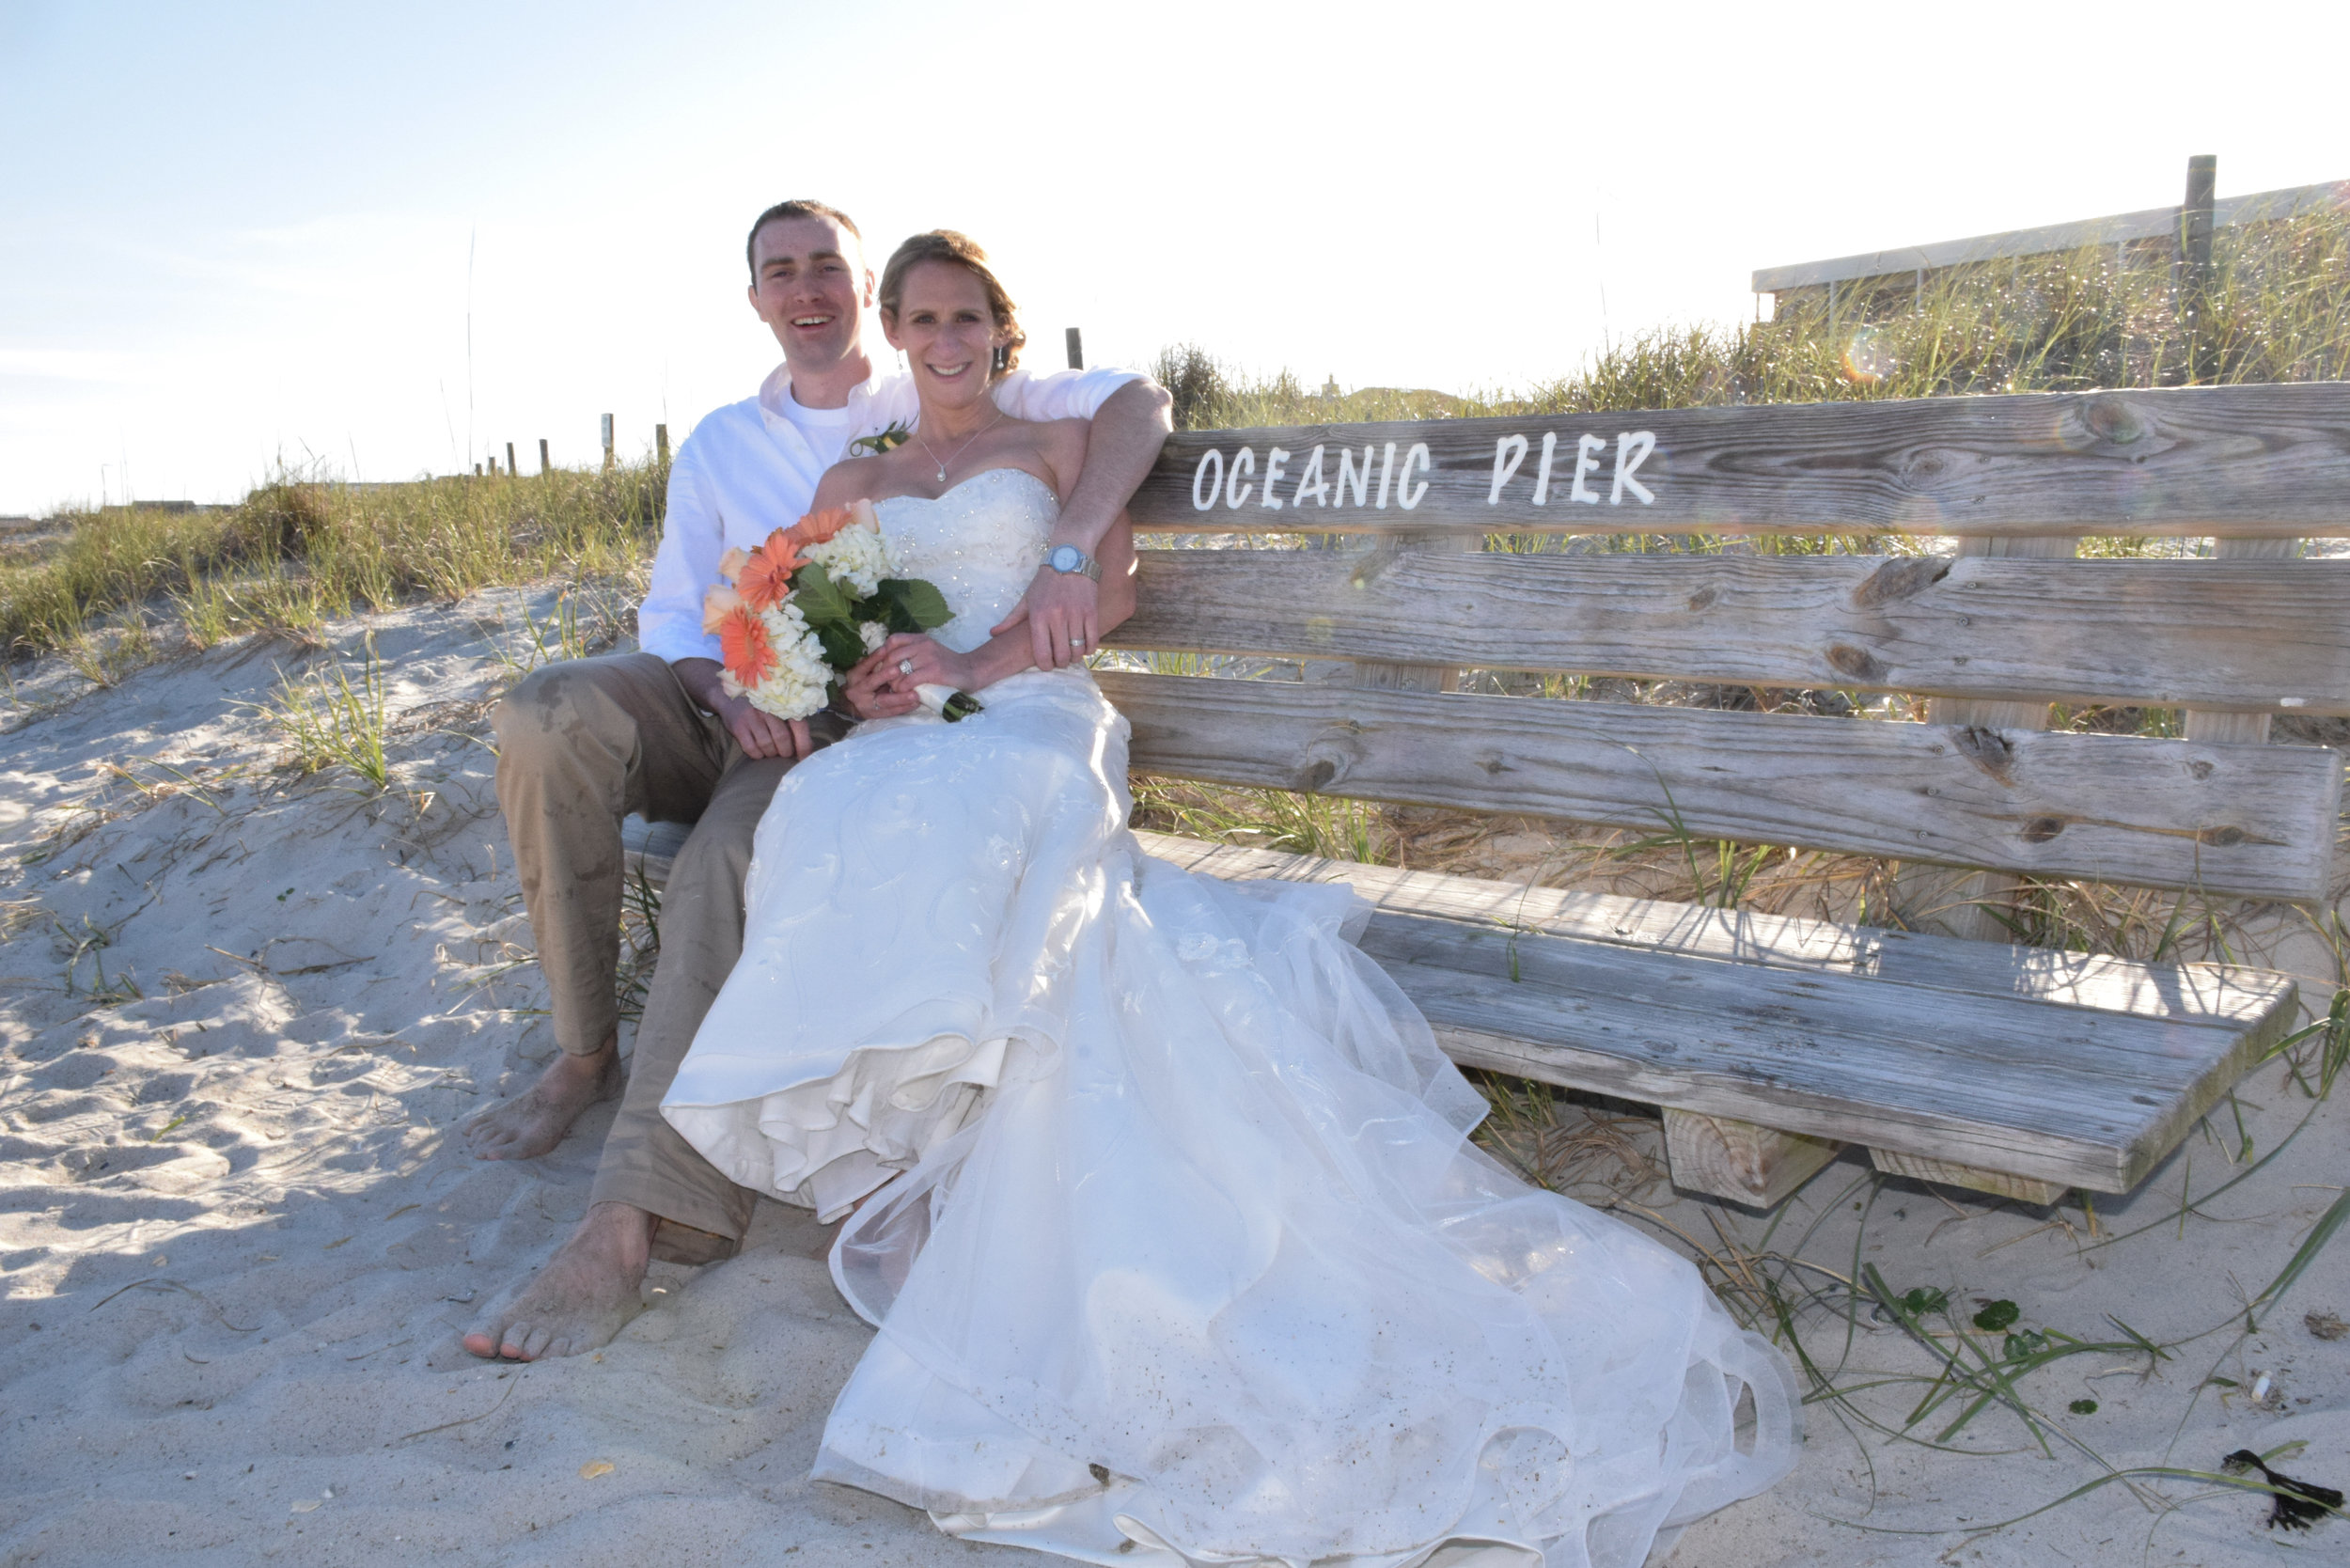 Bride and groom sitting on bench.